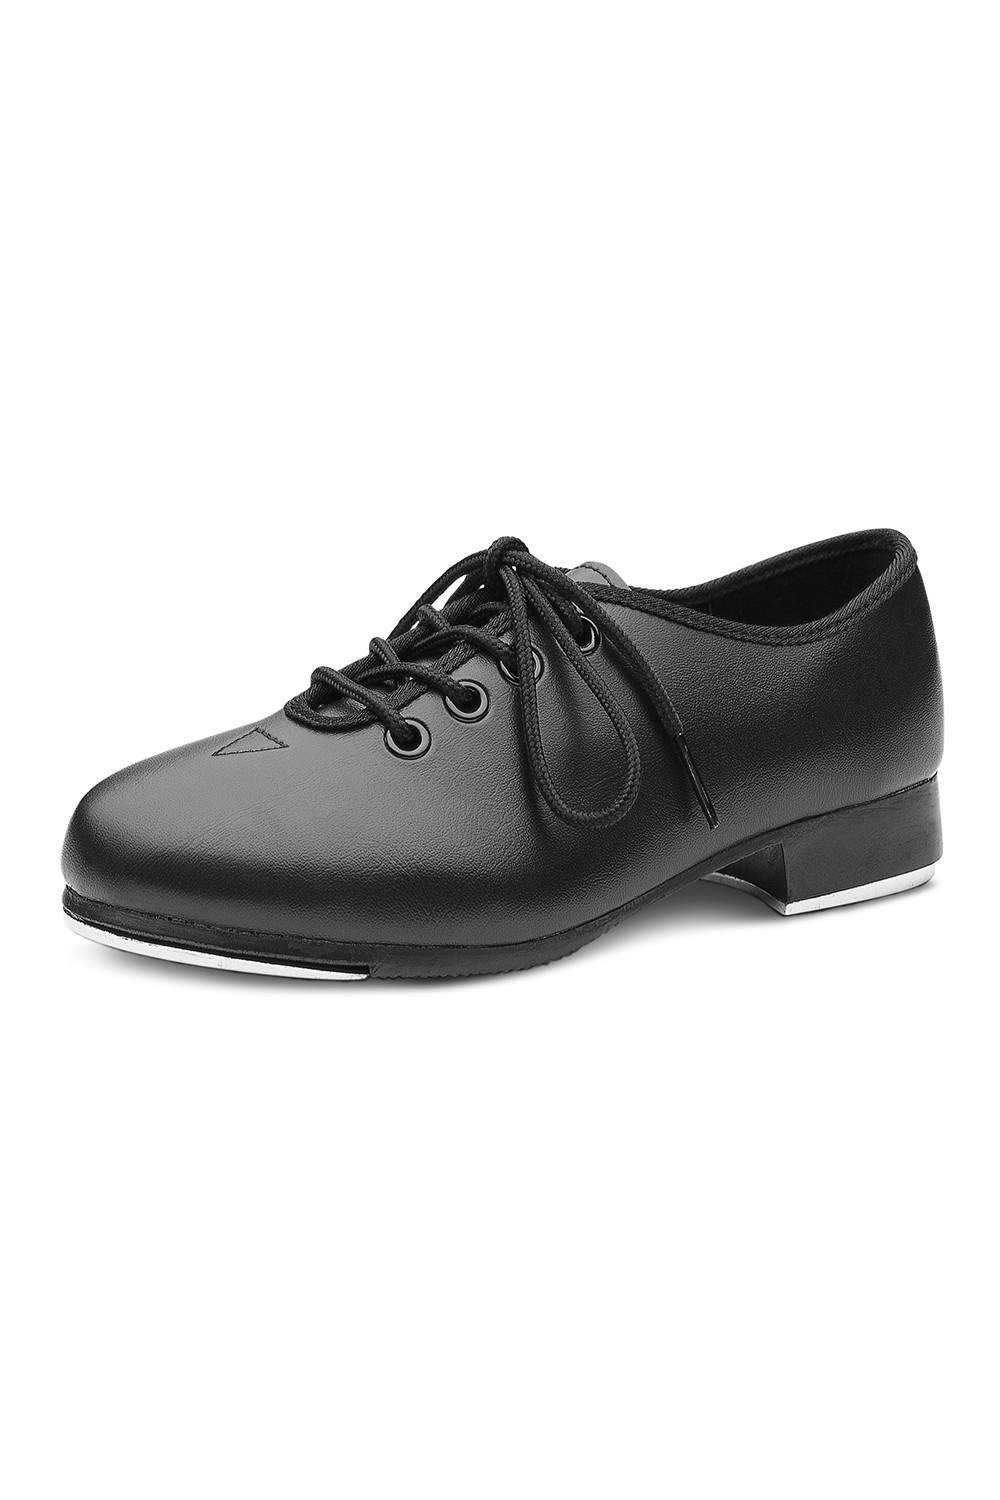 Dance Now Student Jazz Tap Girl's Tap Shoes